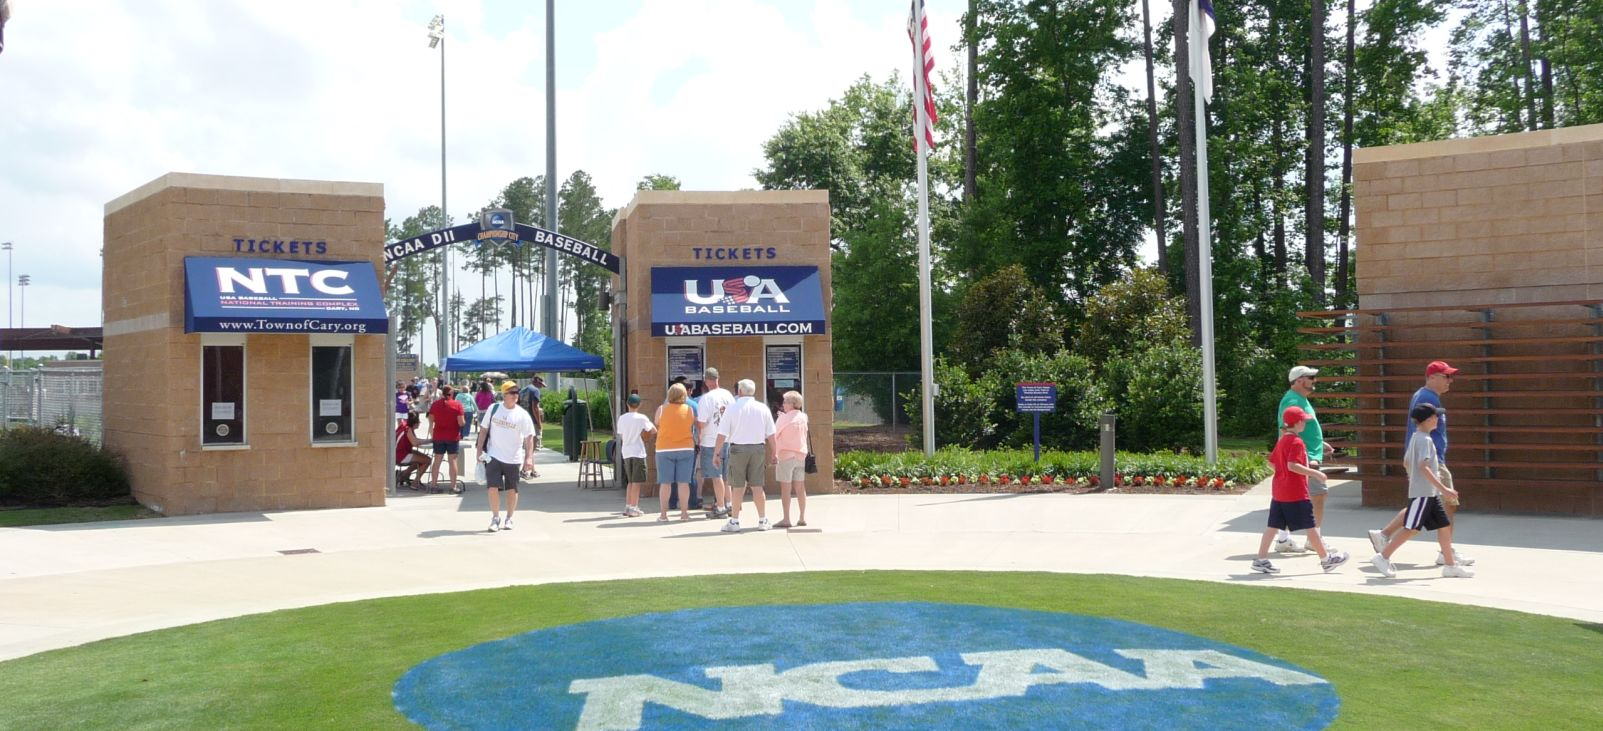 2011 NCAA Division II Baseball entrance